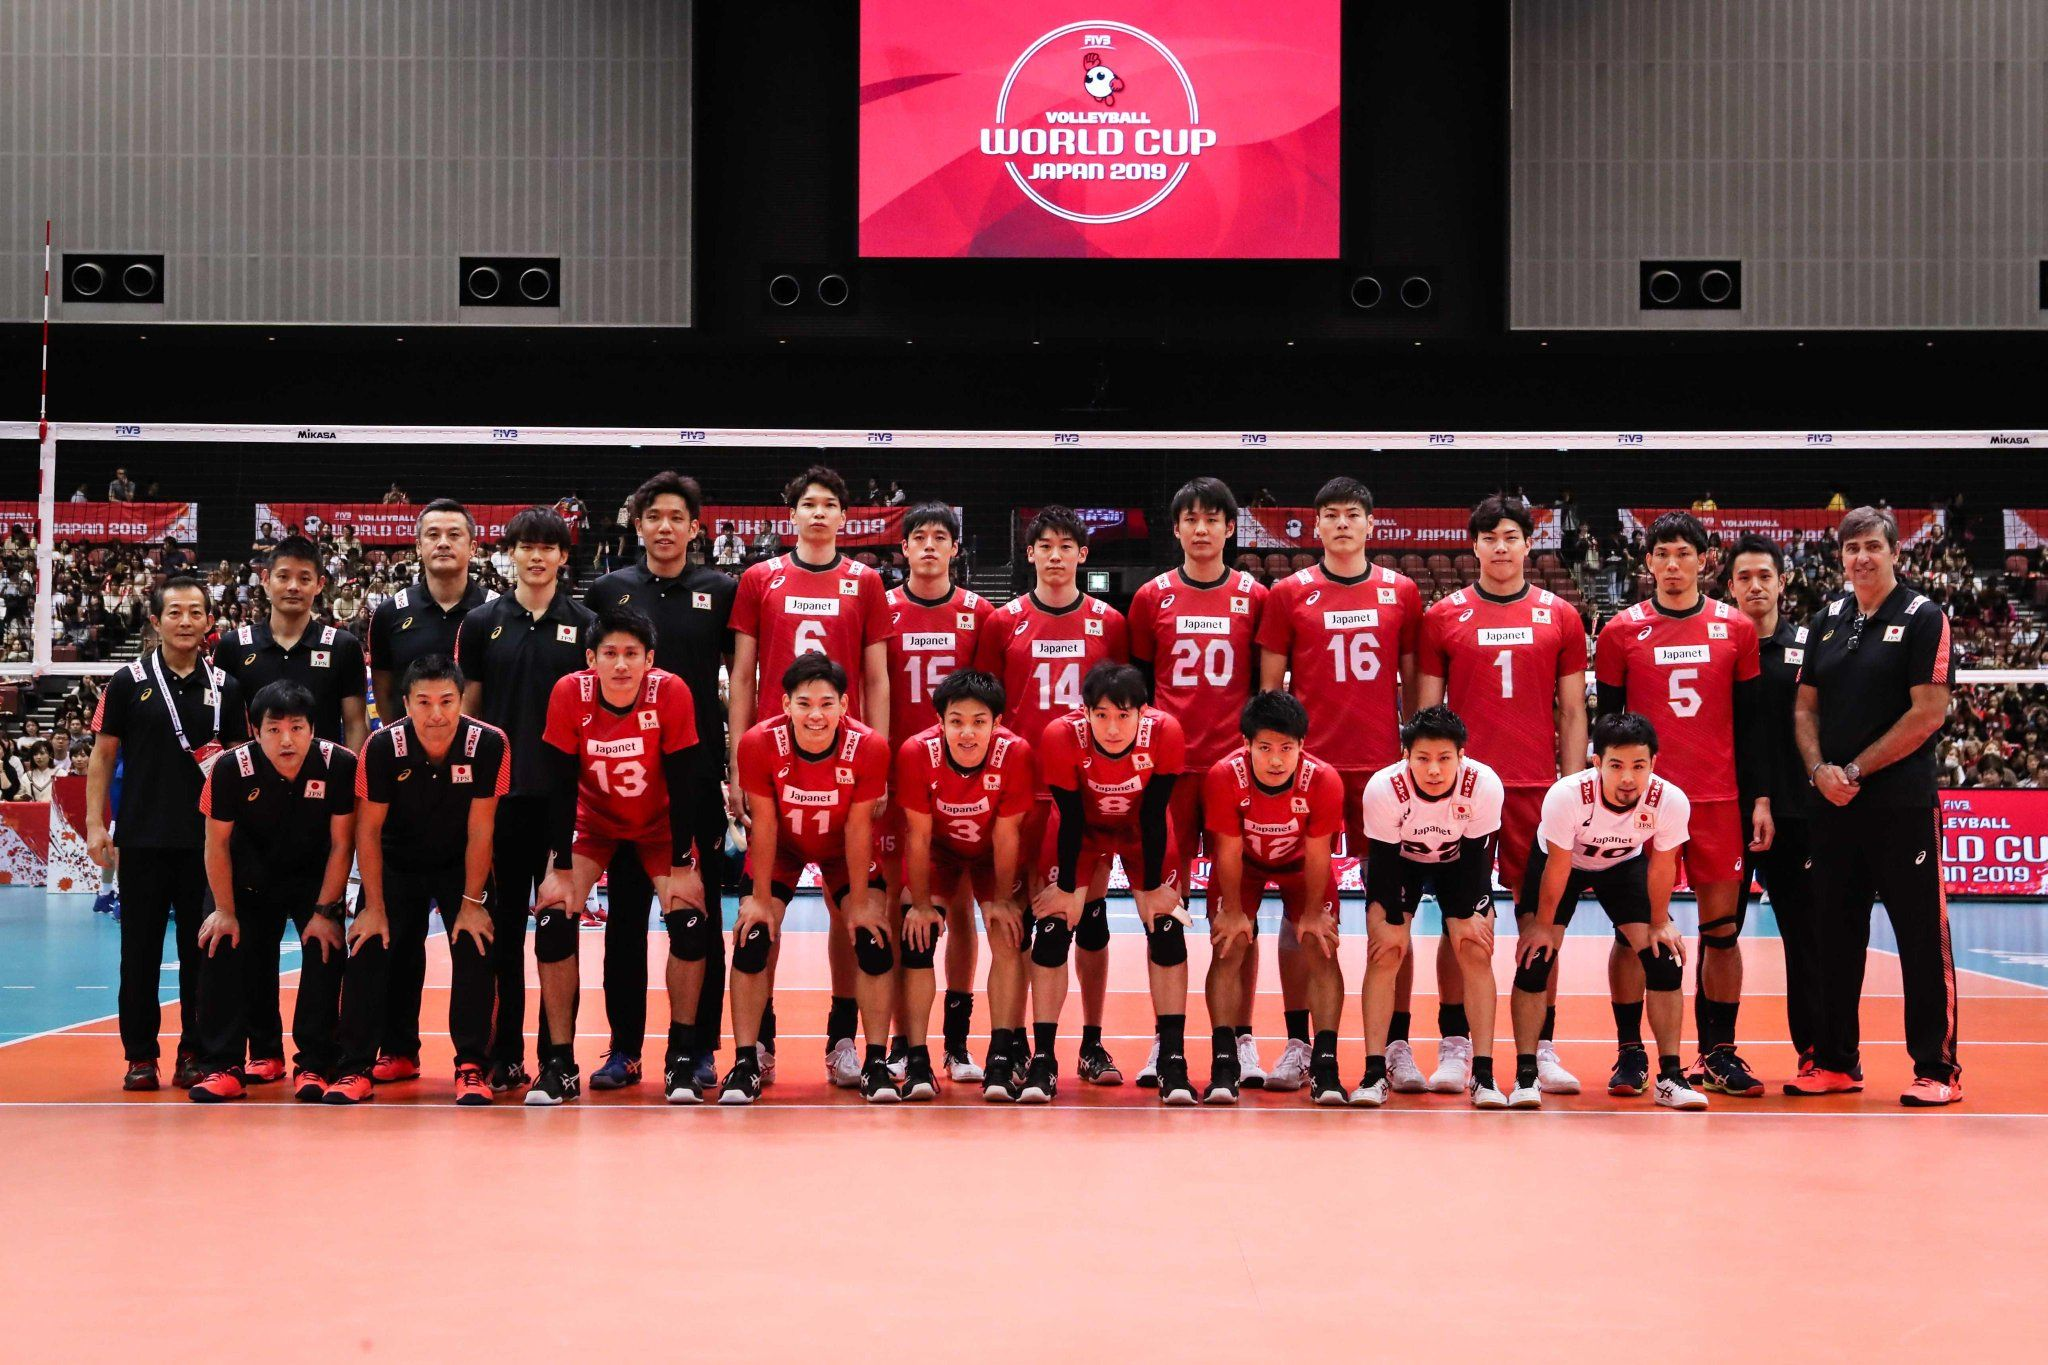 Volleyball World On Twitter In 2020 Japan Volleyball Team Volleyball Coaching Volleyball